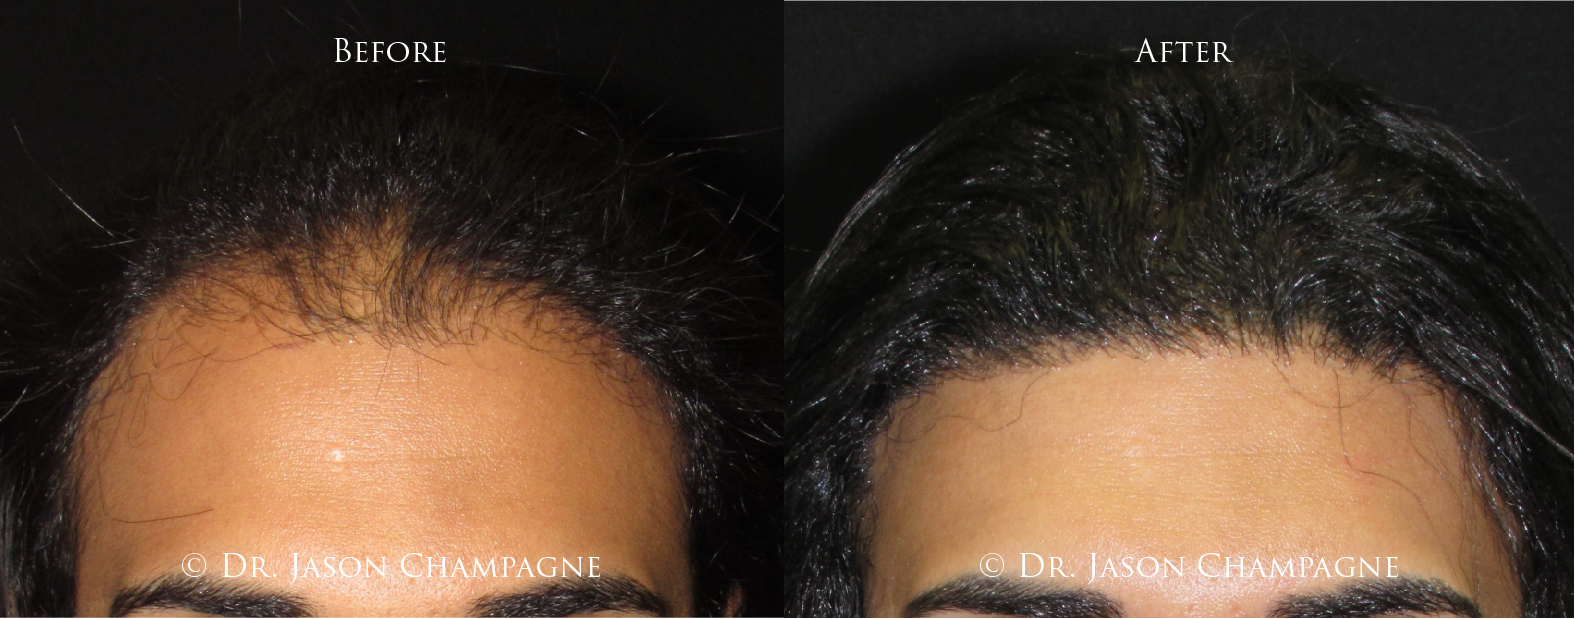 Dr-Jason-Champagne-Hair-Transplantation-Before-and-After-3-11-19 2